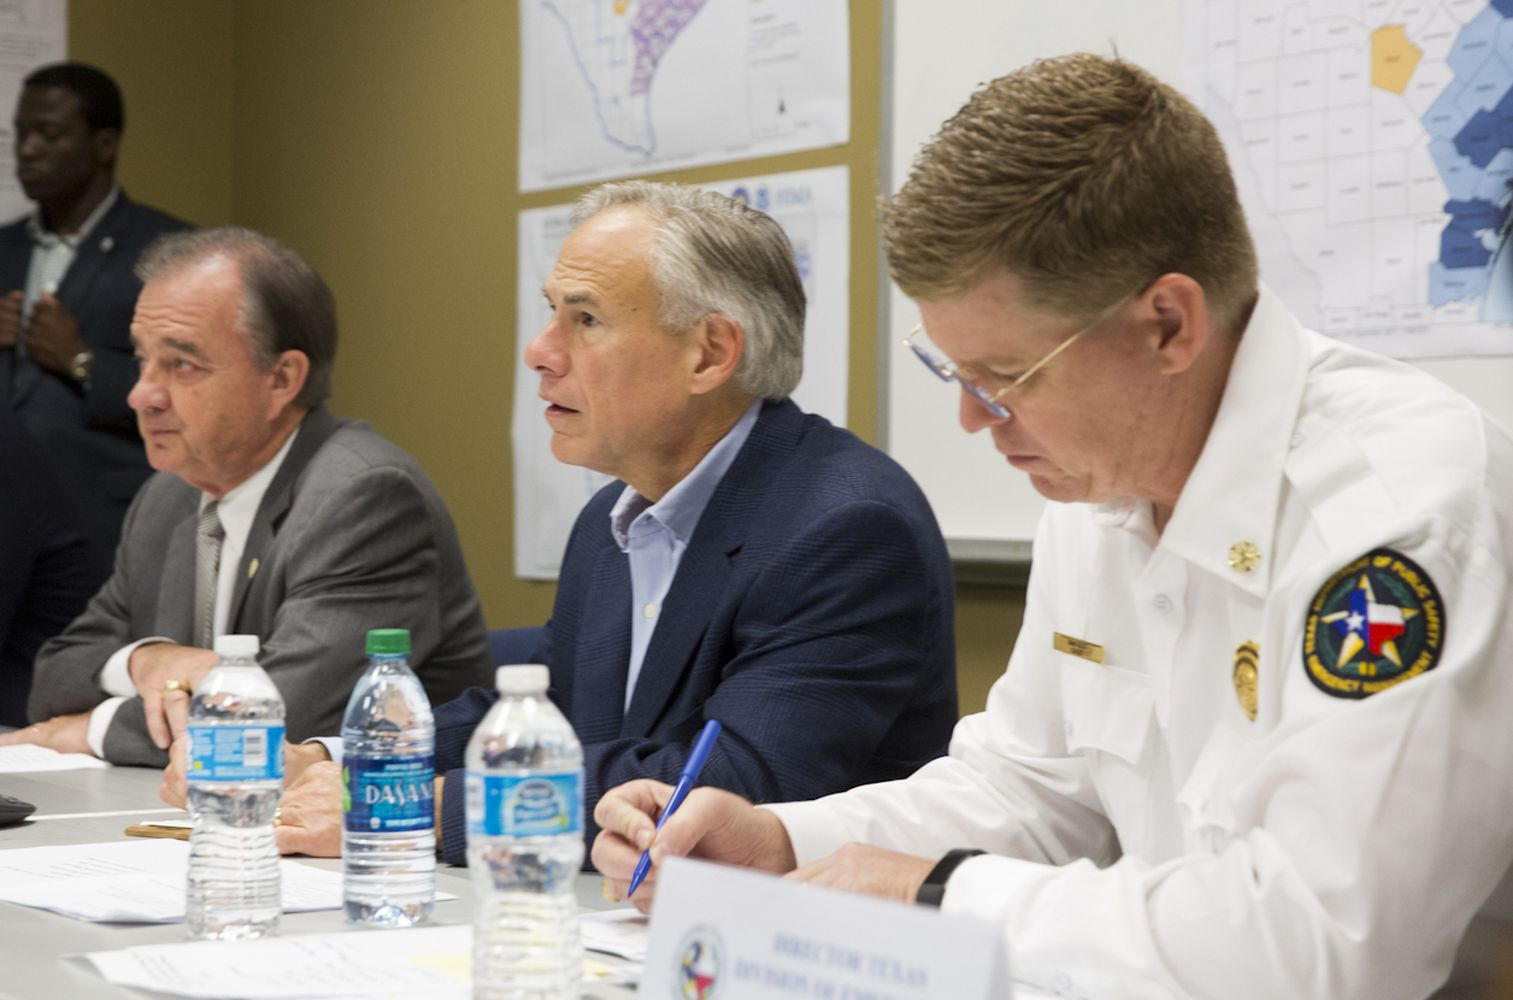 John Sharp, Texas A&M University chancellor andheadof the new Governor's Commission to Rebuild Texas, Gov. Greg Abbott andNim Kidd, Chief of Texas Emergency Management, get briefed on recovery efforts after Hurricane Harvey at the FEMA Joint Field Office in Austin on Sept. 14, 2017.